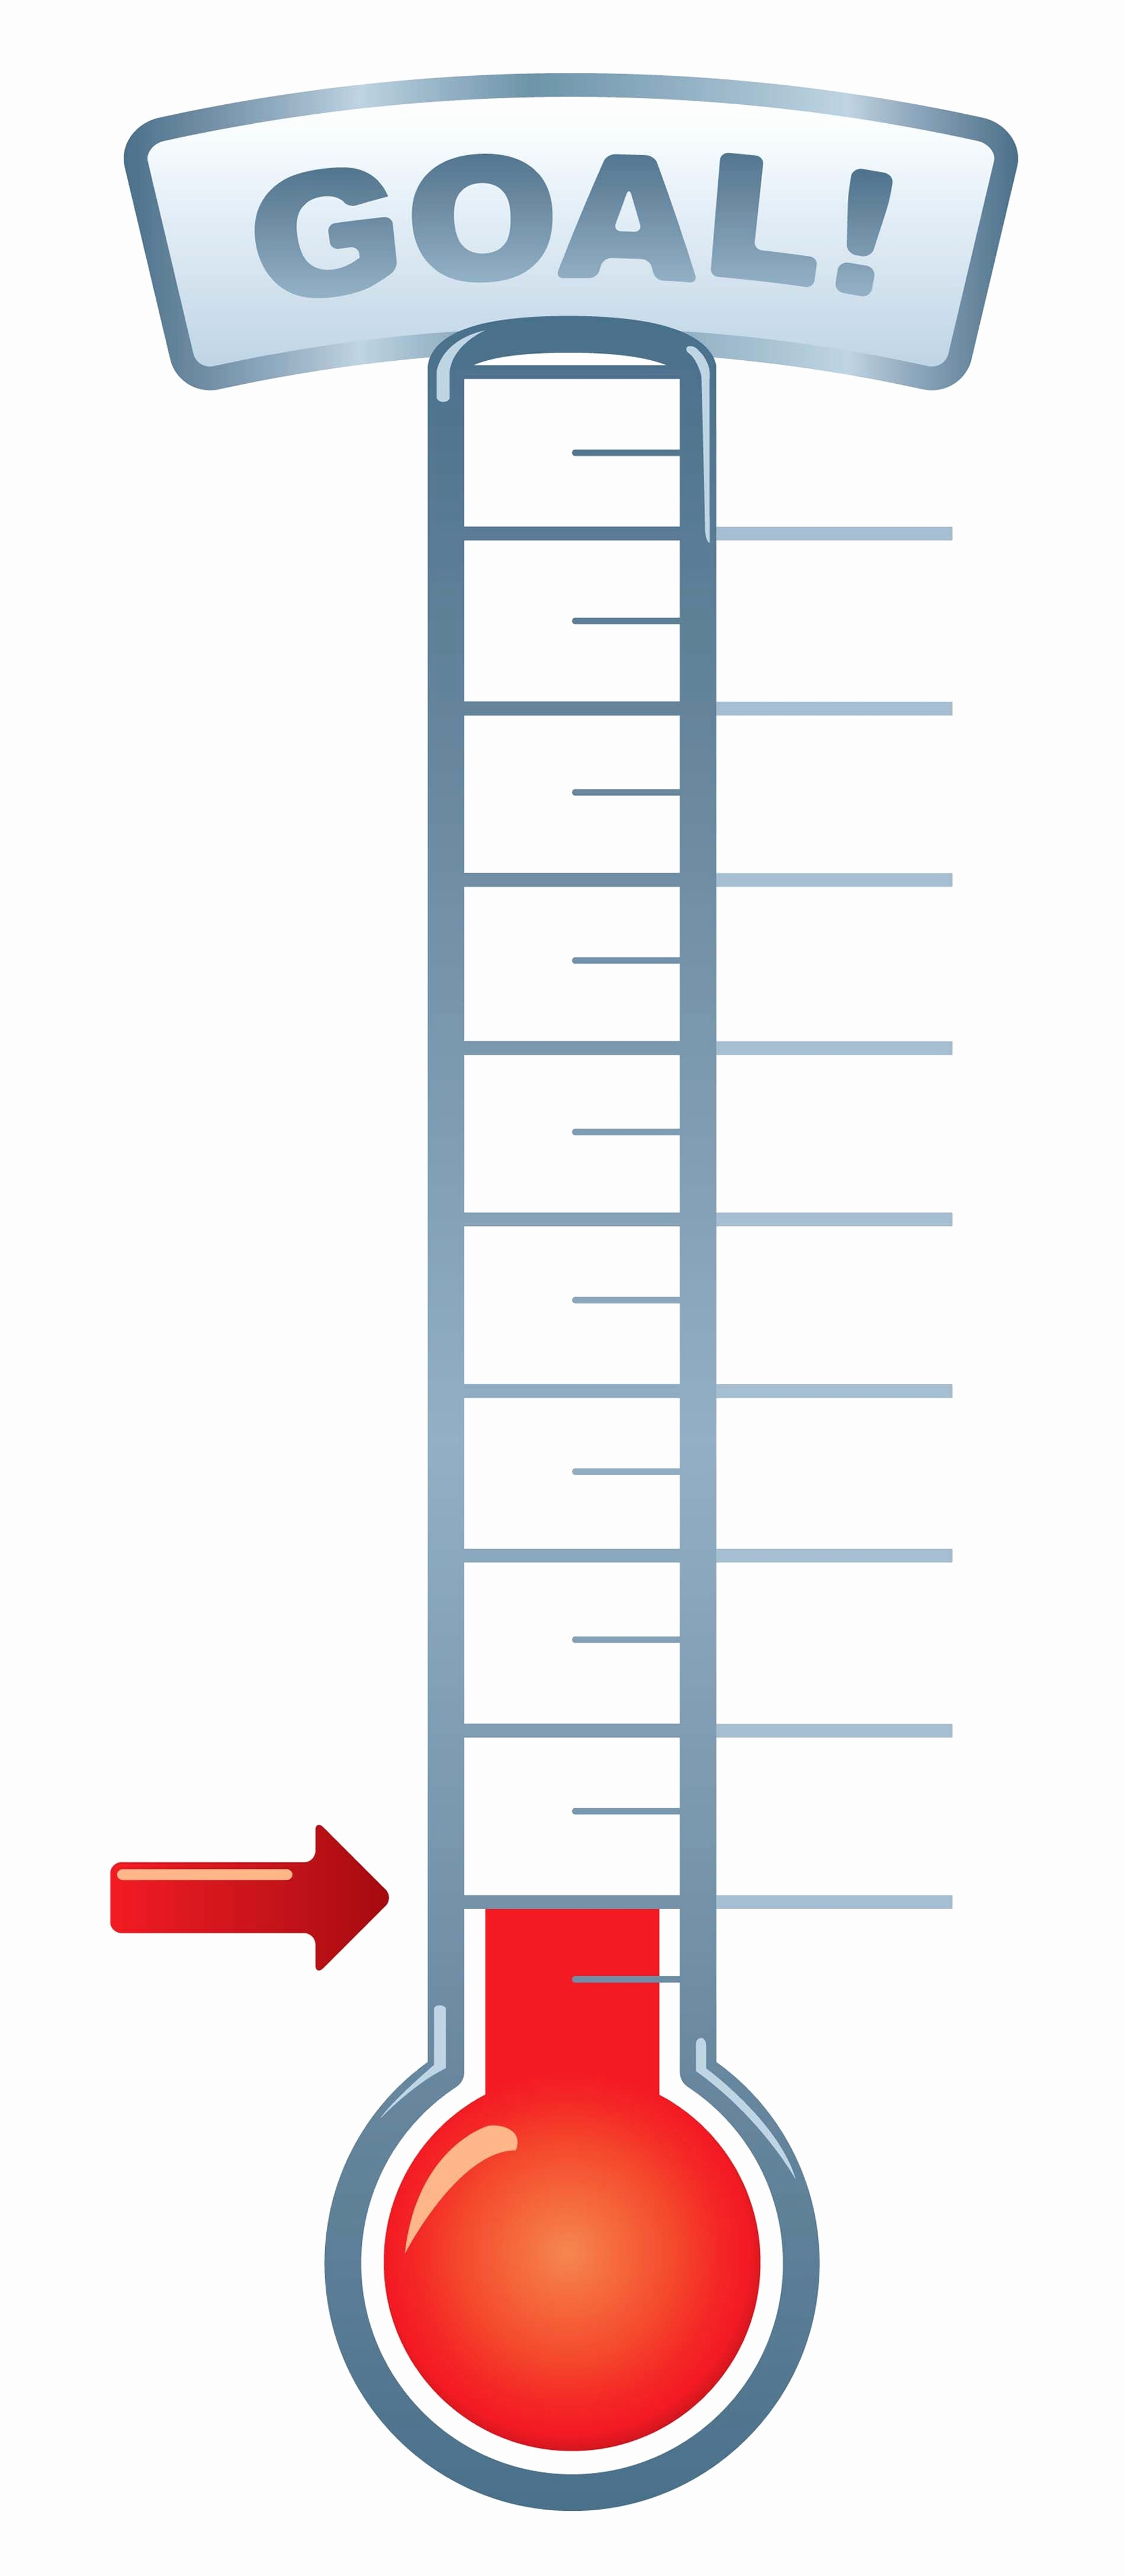 Free Printable Goal Thermometer Template For Goal Thermometer - Free Printable Goal Thermometer Template